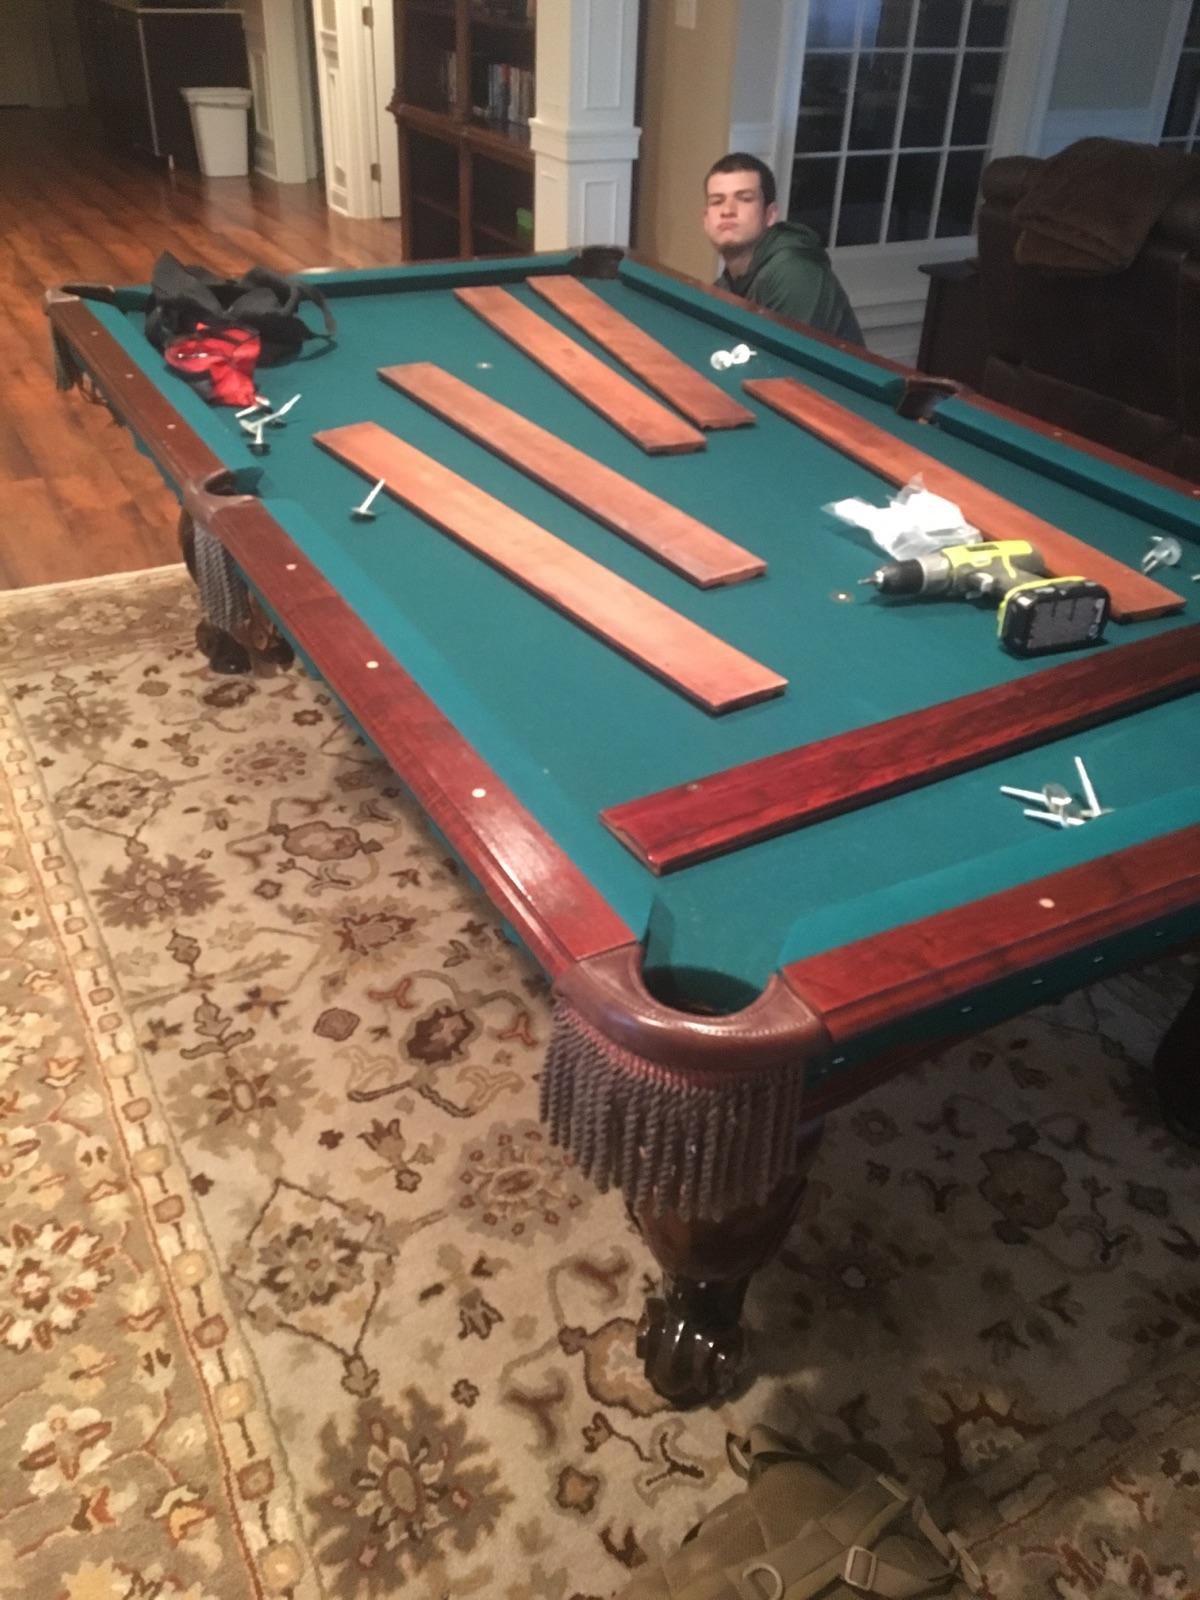 disassembling a pool table